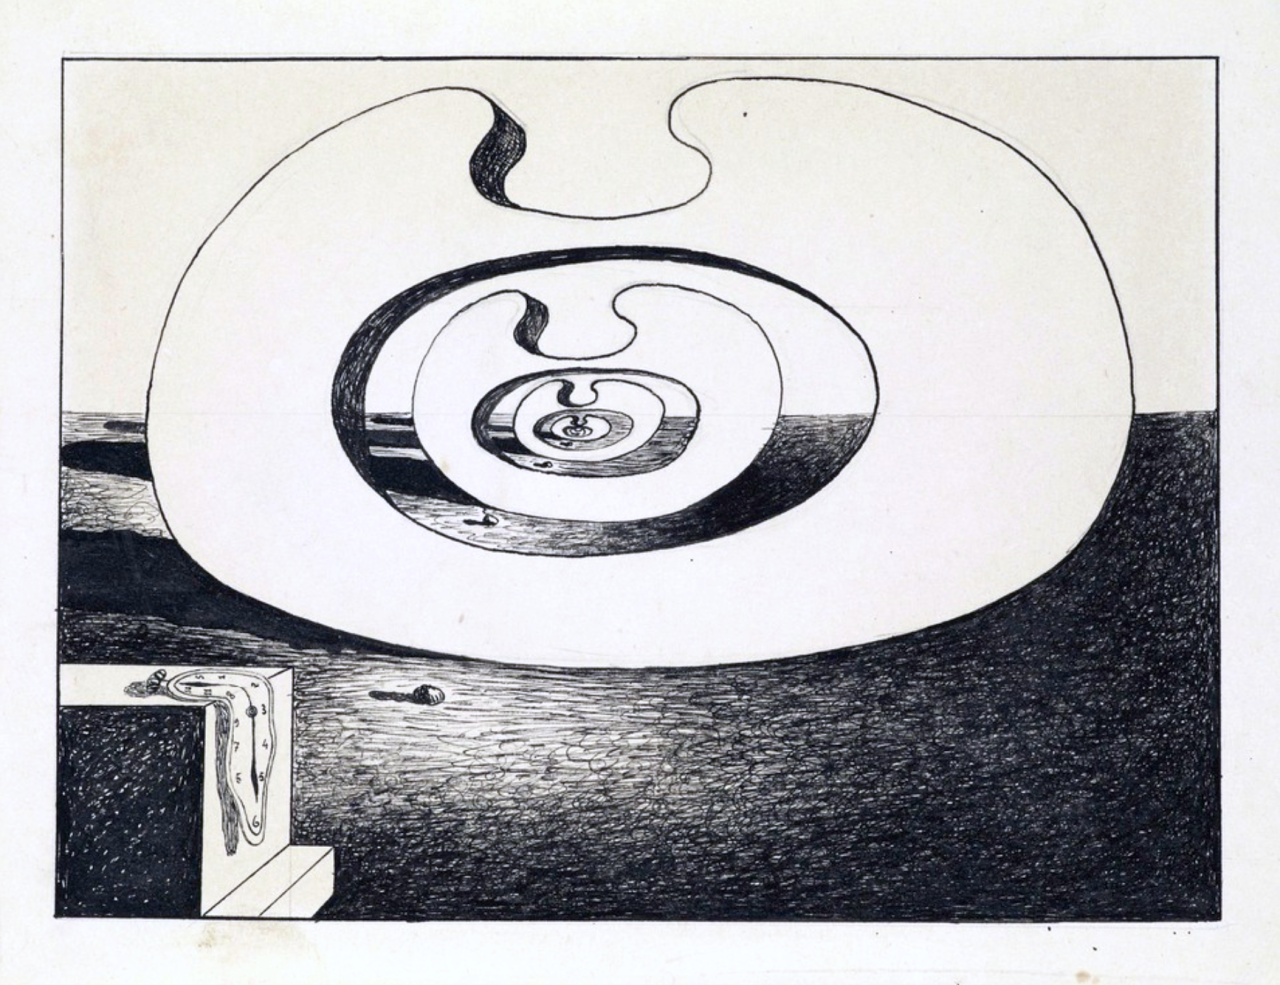 Montre Molle Biomorphique by Salvador Dalí, ca. 1930. India Ink and pencil on paper, 4 ⅞ × 6 ¼ inches. Artlala Studio Gallery, Los Angeles, CA.